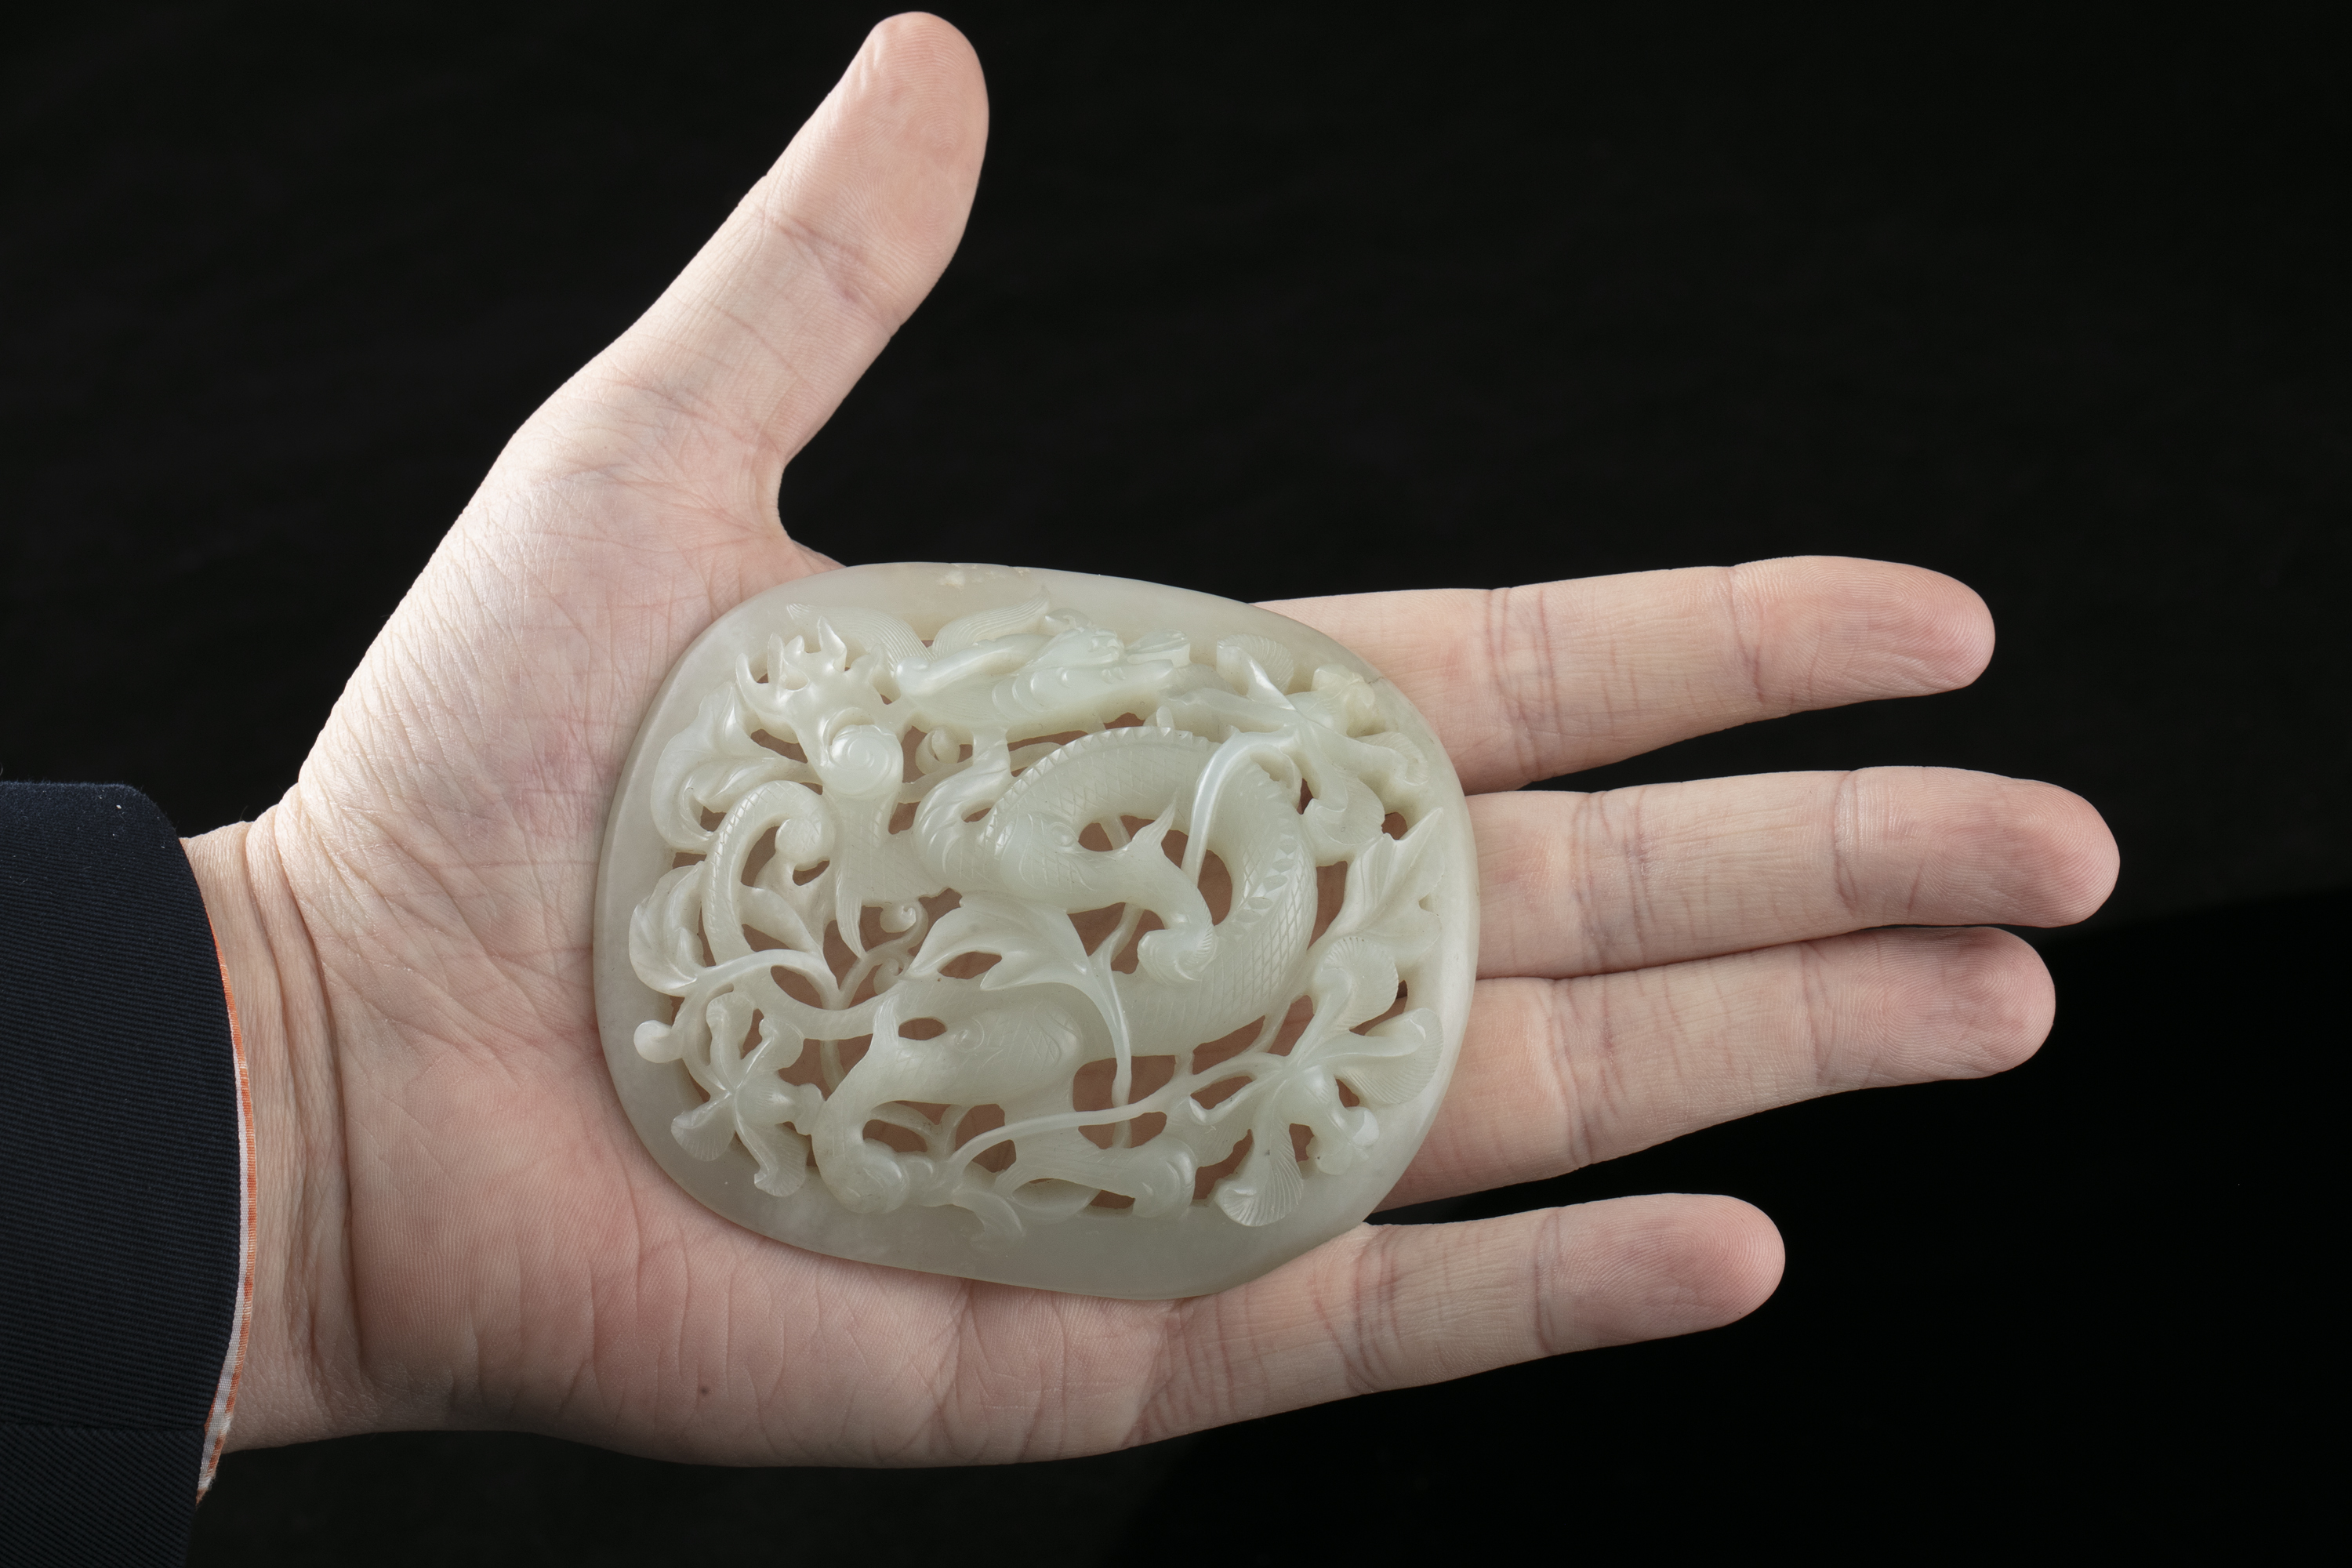 AN OPEN-WORKED WHITE JADE 'DRAGON' PLAQUE China, Antique, Possibly Ming Dynasty H: 7,8 cm - w: 9,2 - Image 13 of 20